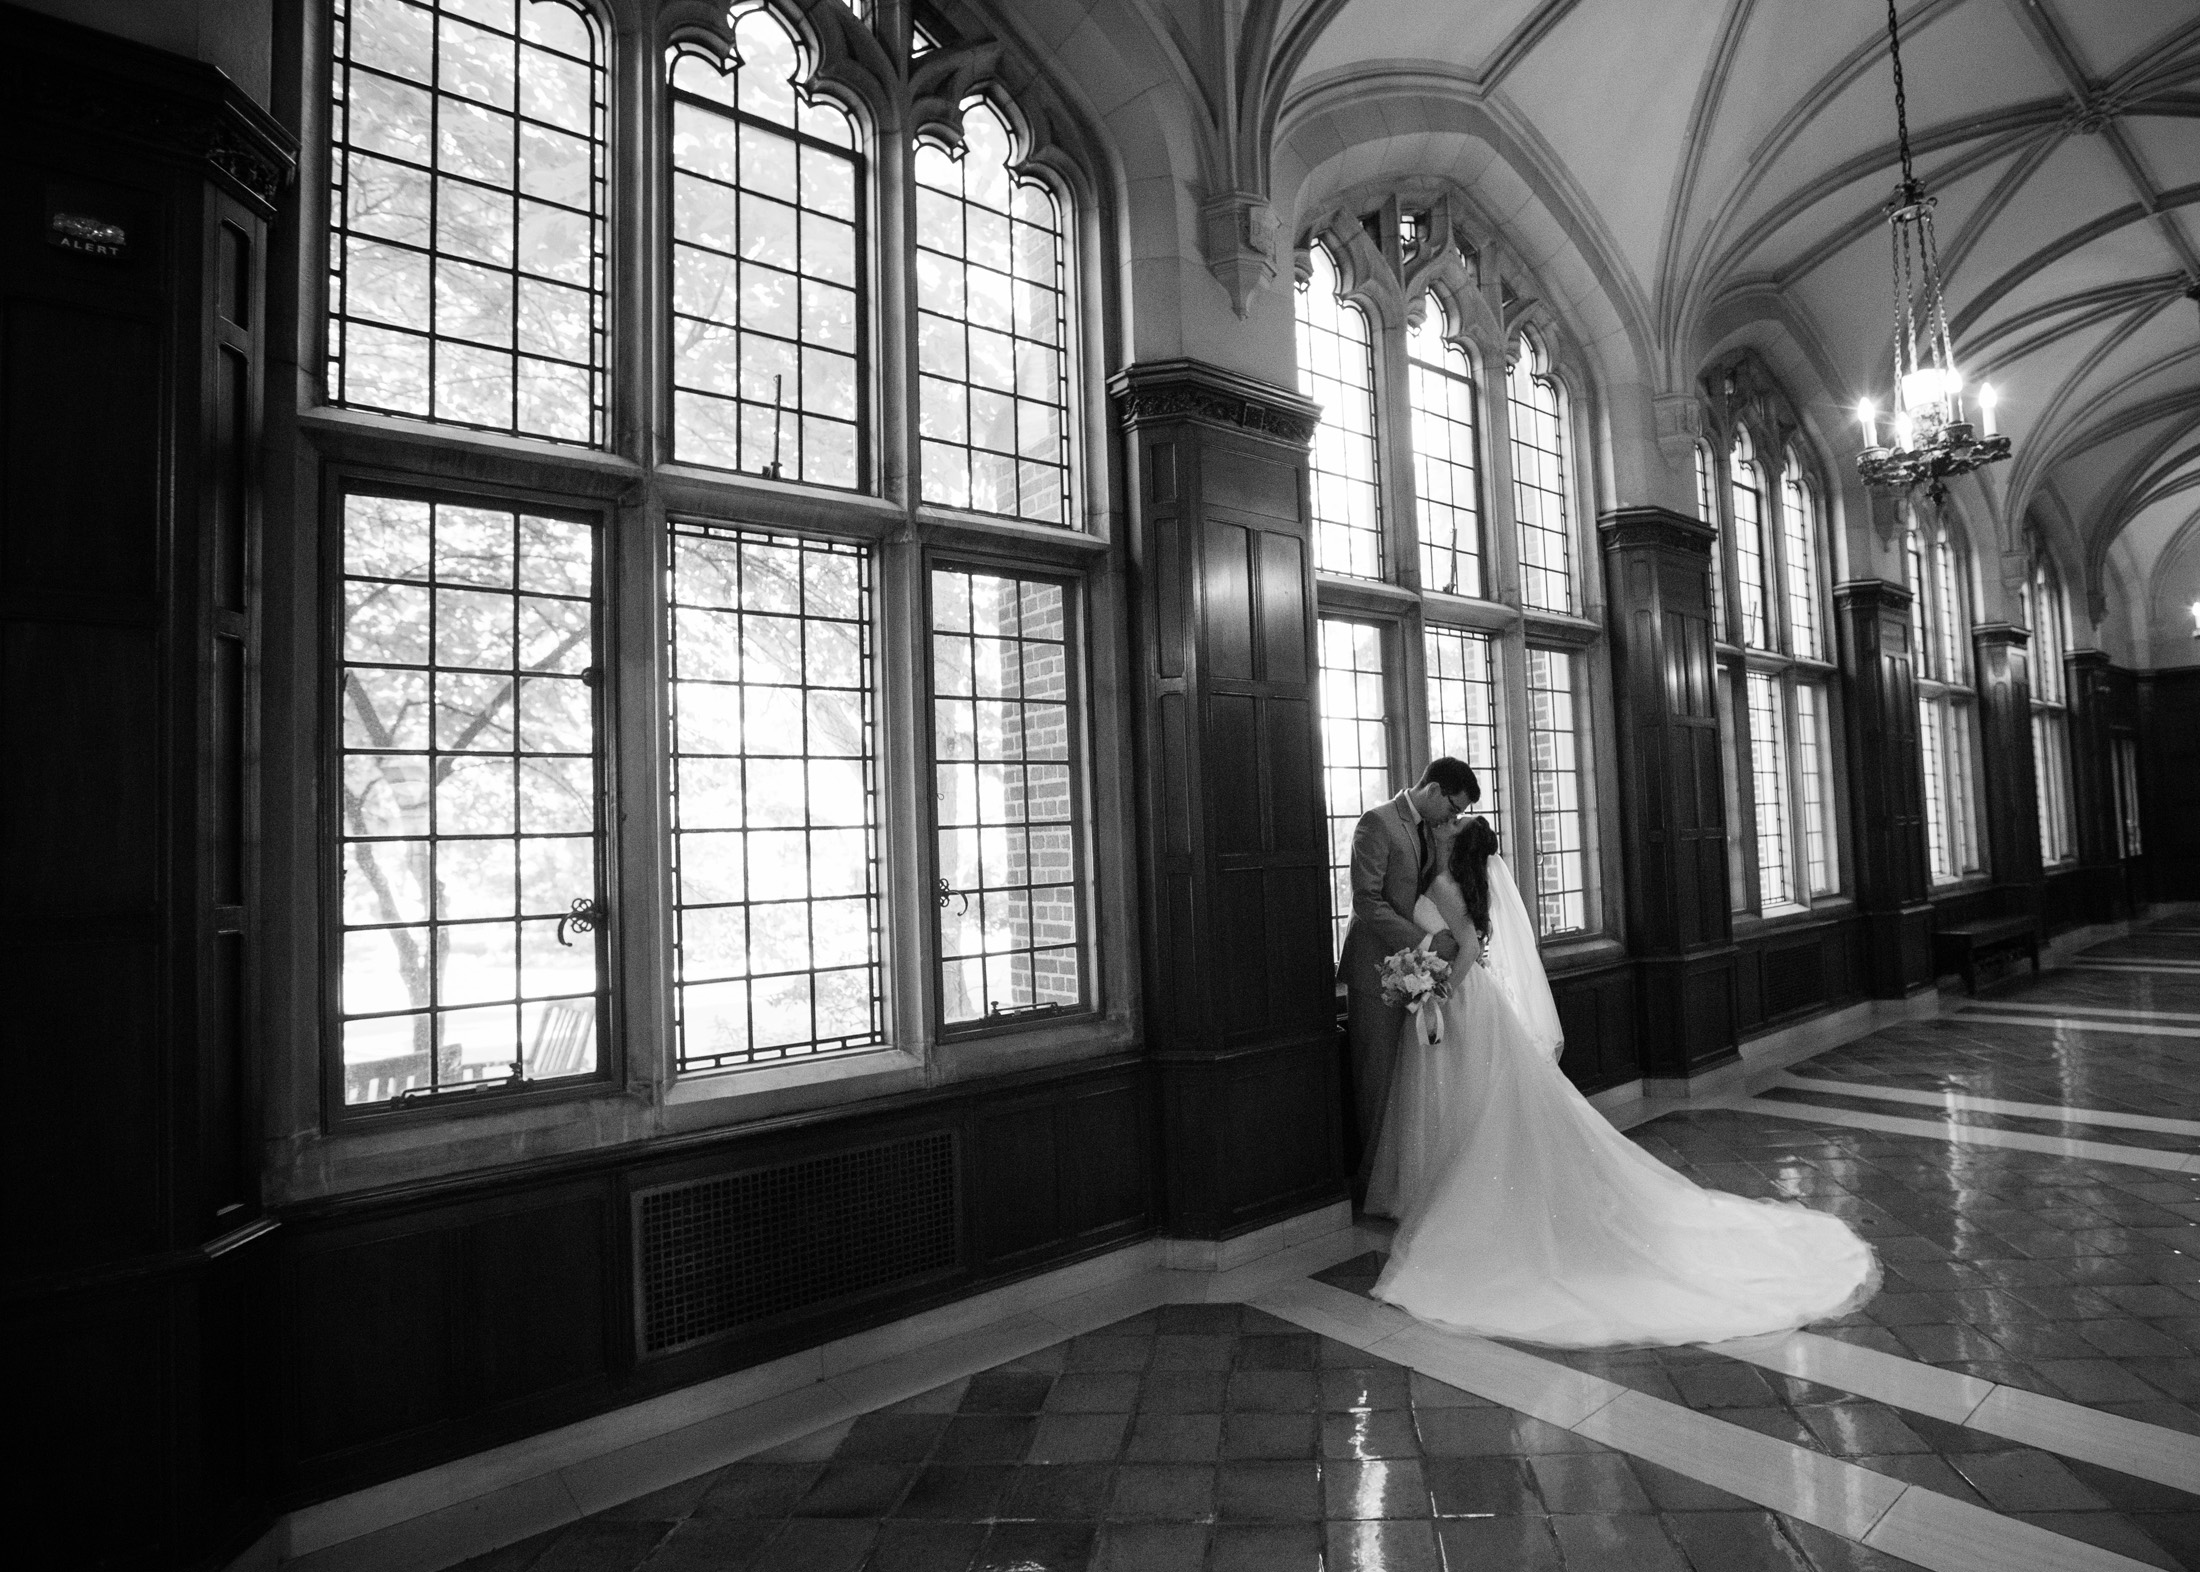 UofM_weddings_hull_melanie_reyes_047